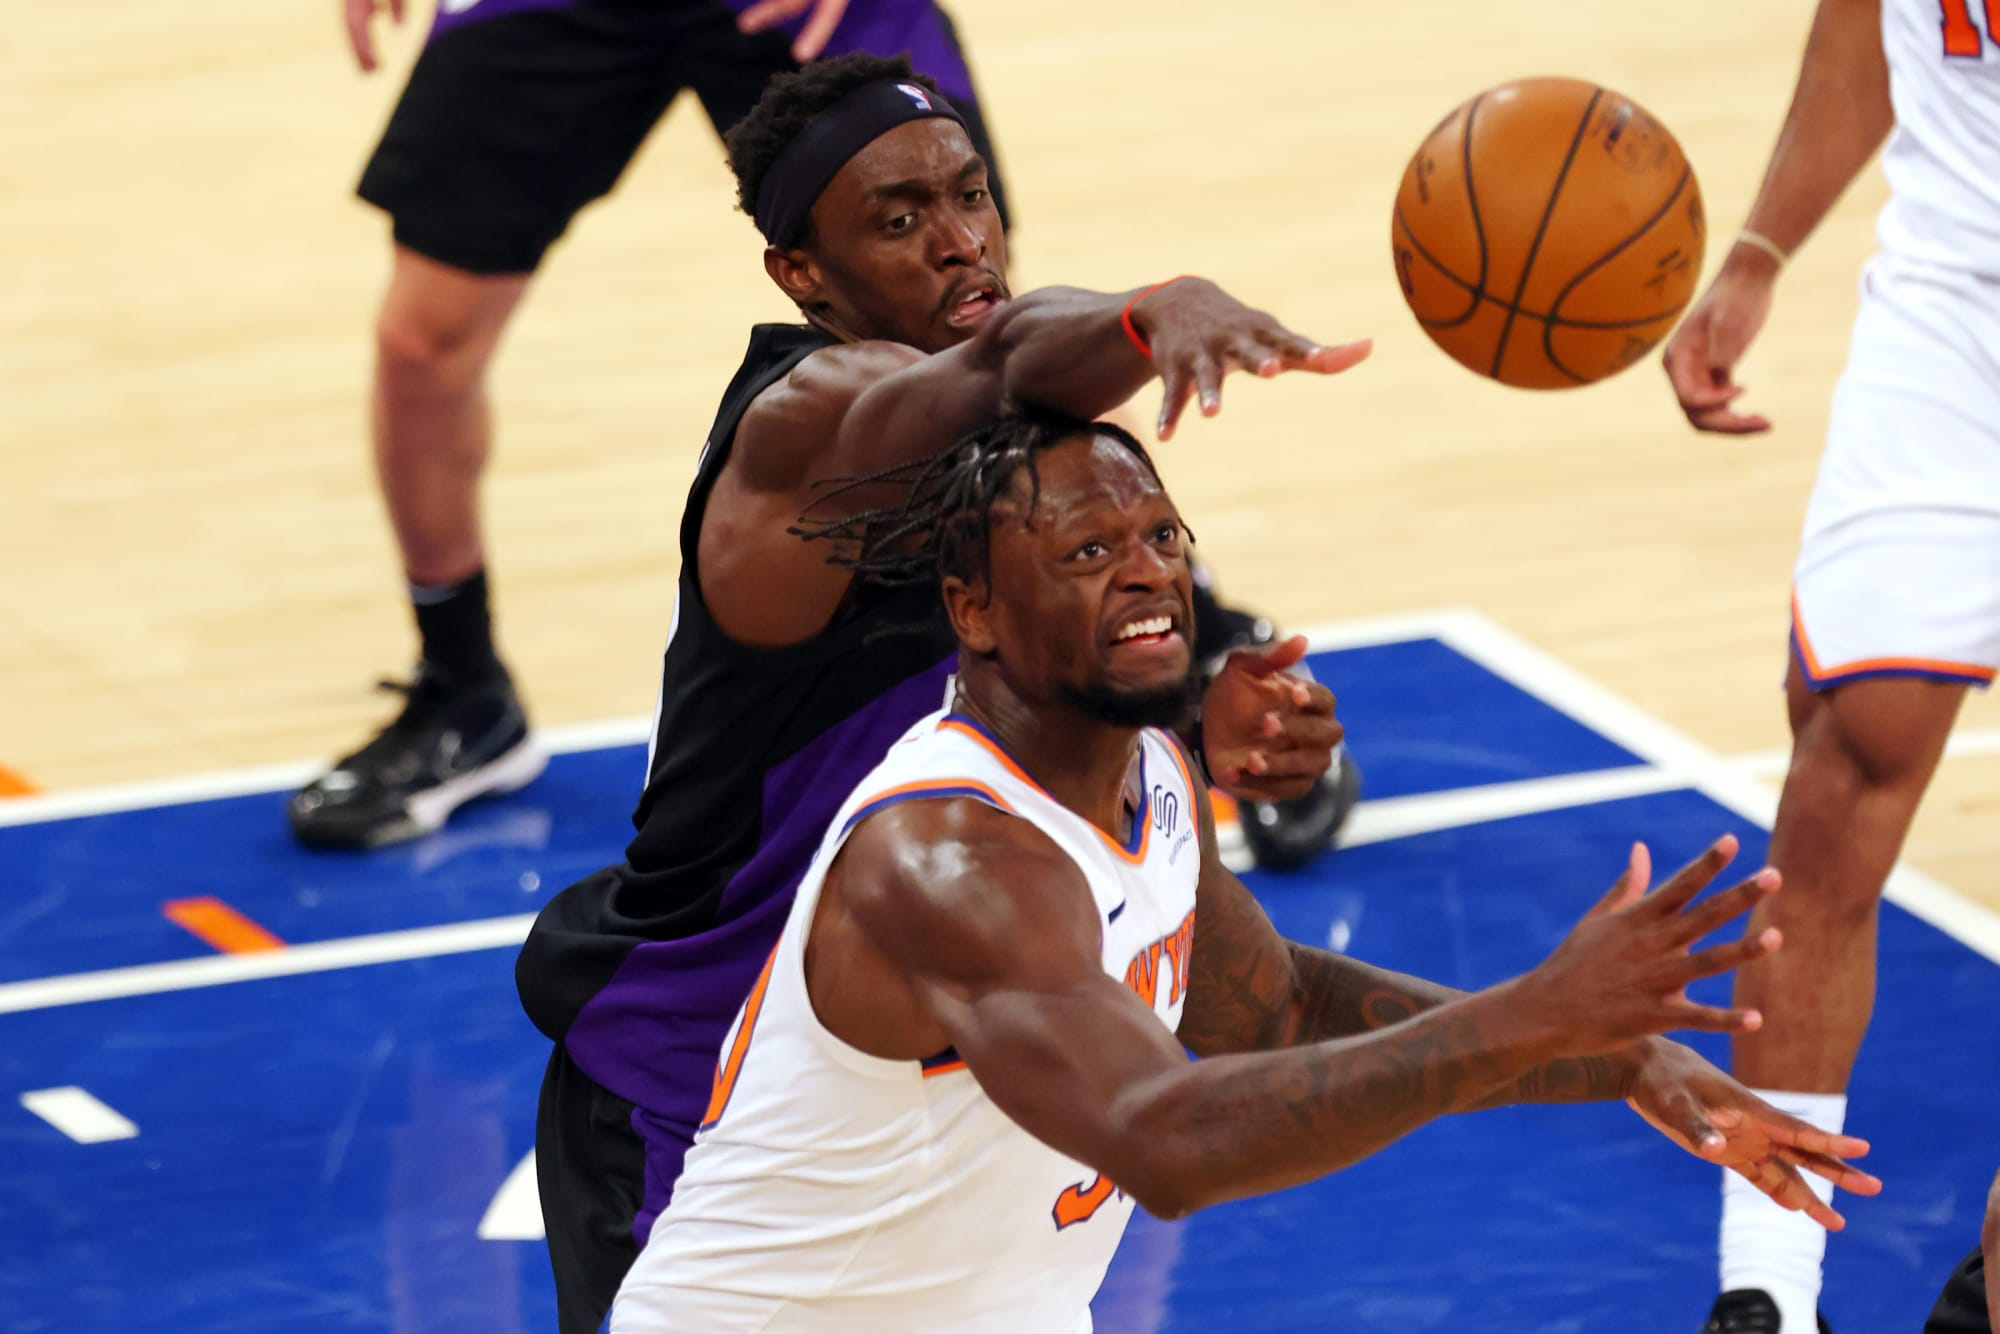 Raptors: Julius Randle's playoff stats are worse than Pascal Siakam's bubble numbers